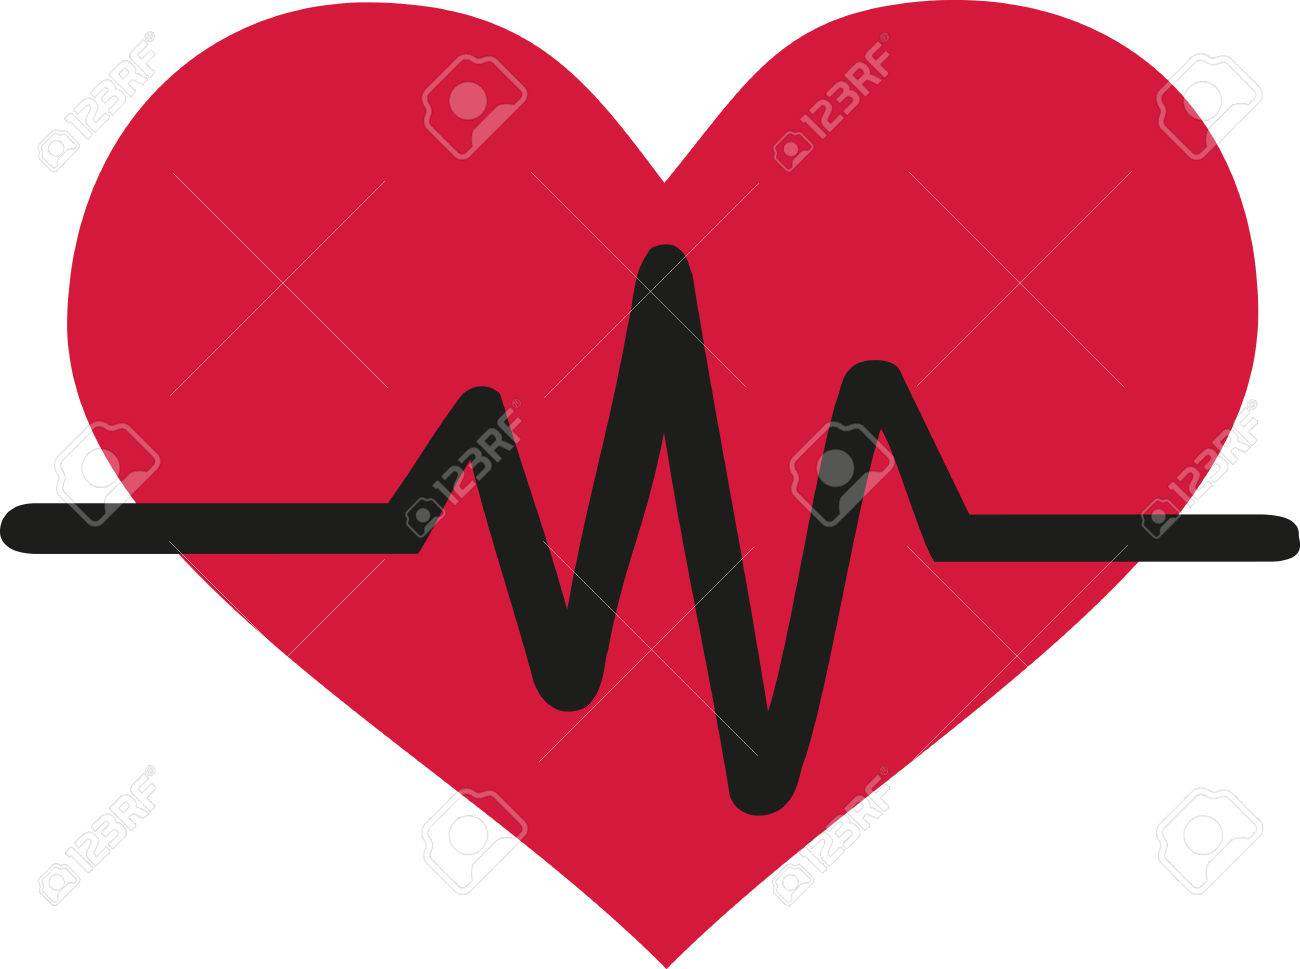 Line Art Love Heart : Heart beat line royalty free cliparts vectors and stock